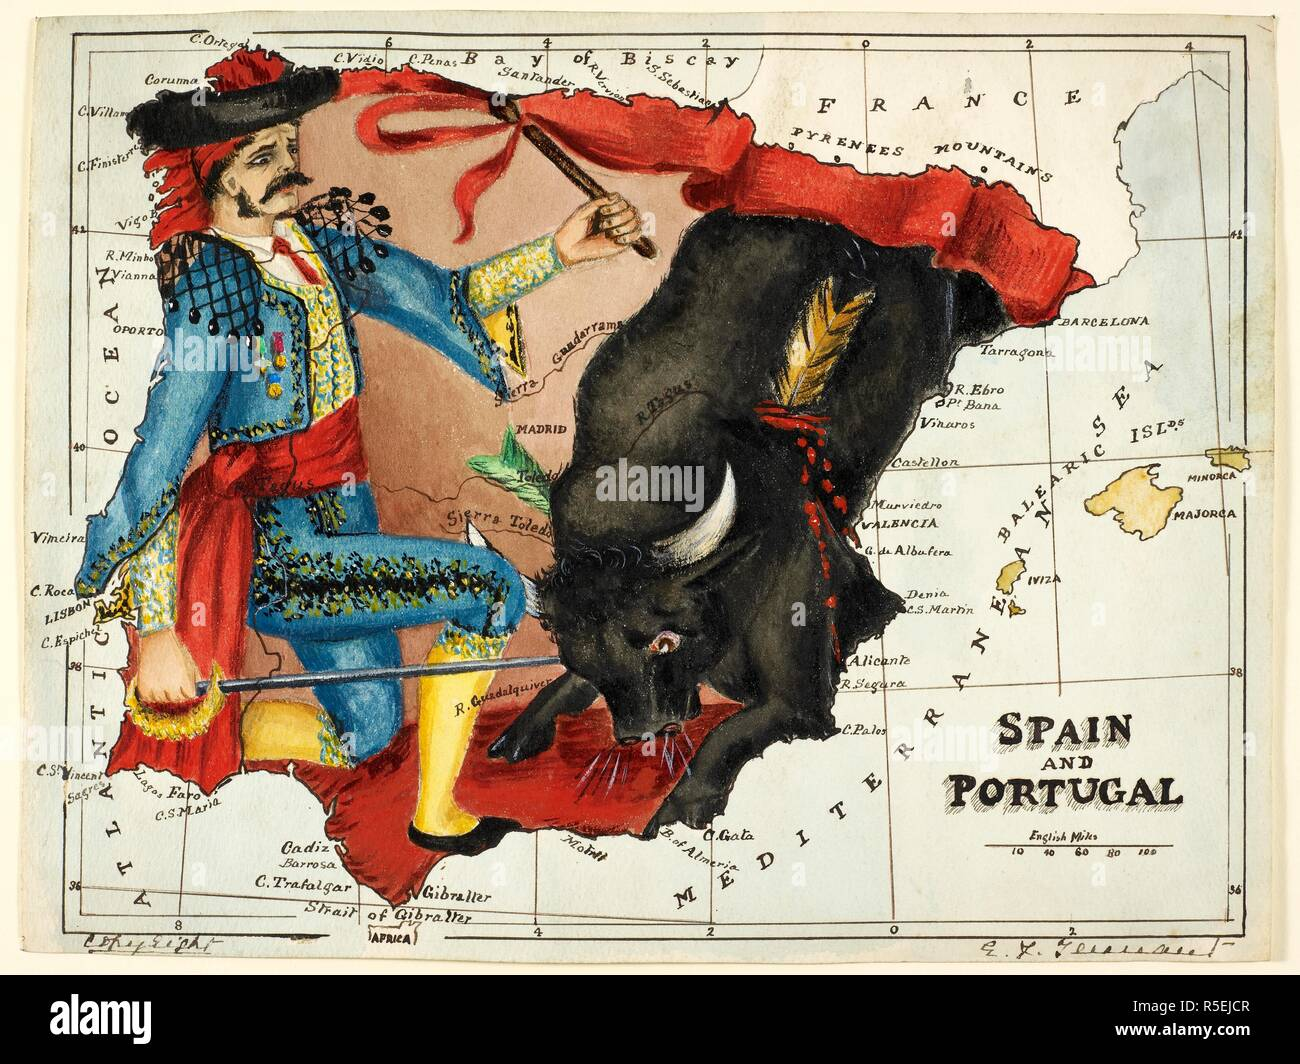 Map 24 Spain.Map Of Spain And Portugal Represented As A Matador And Bull Spain